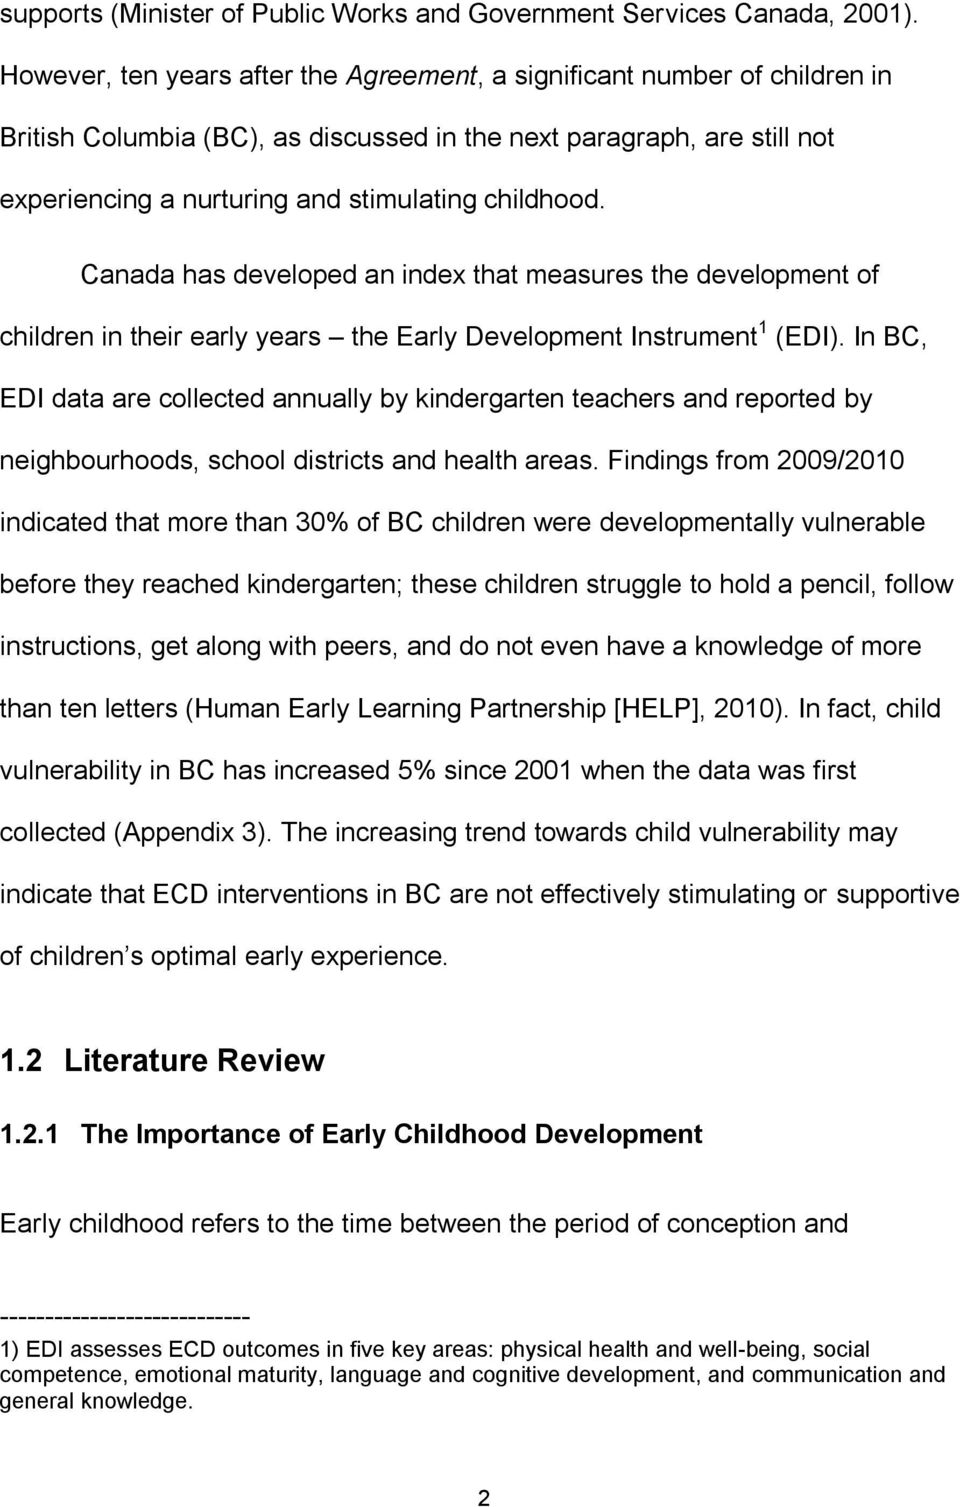 Canada has developed an index that measures the development of children in their early years the Early Development Instrument 1 (EDI).